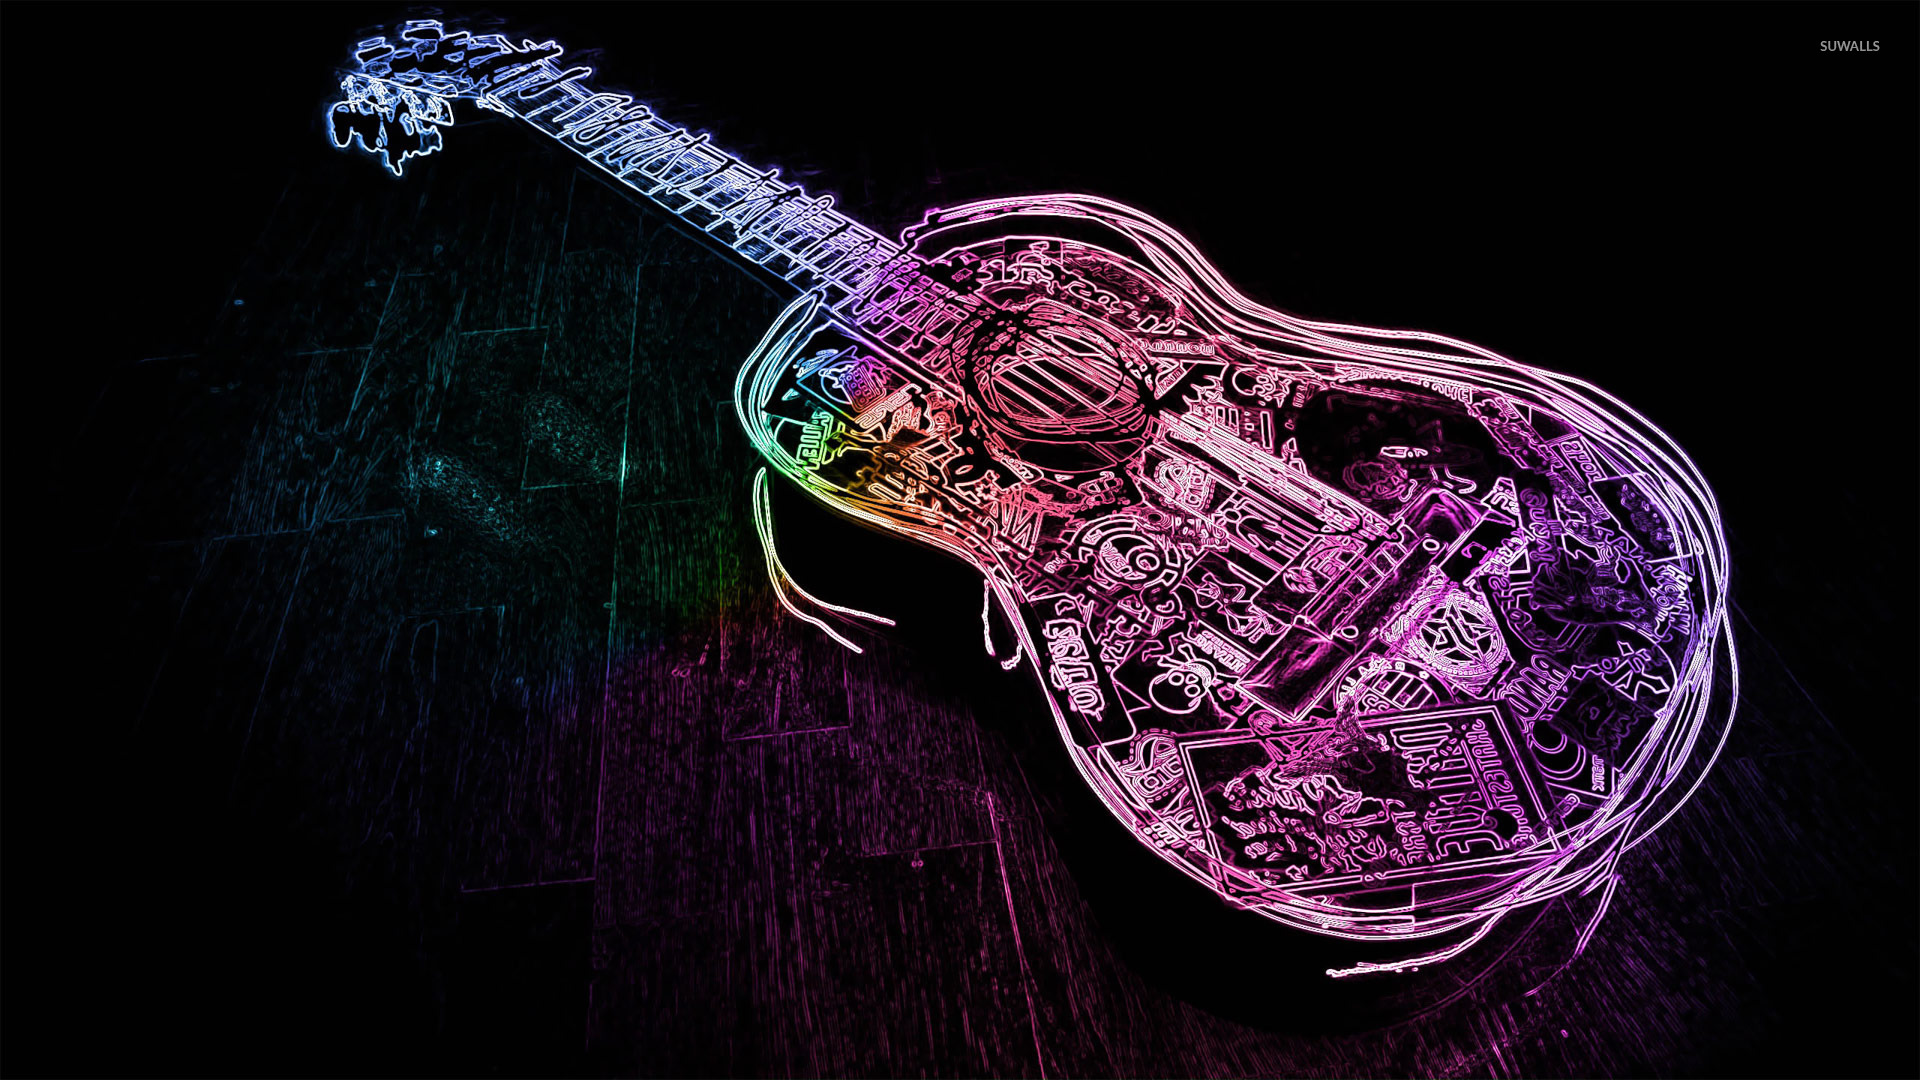 Good Wallpaper Music Purple - glowing-neon-guitar-outline-19107-1920x1080  Trends_651046.jpg